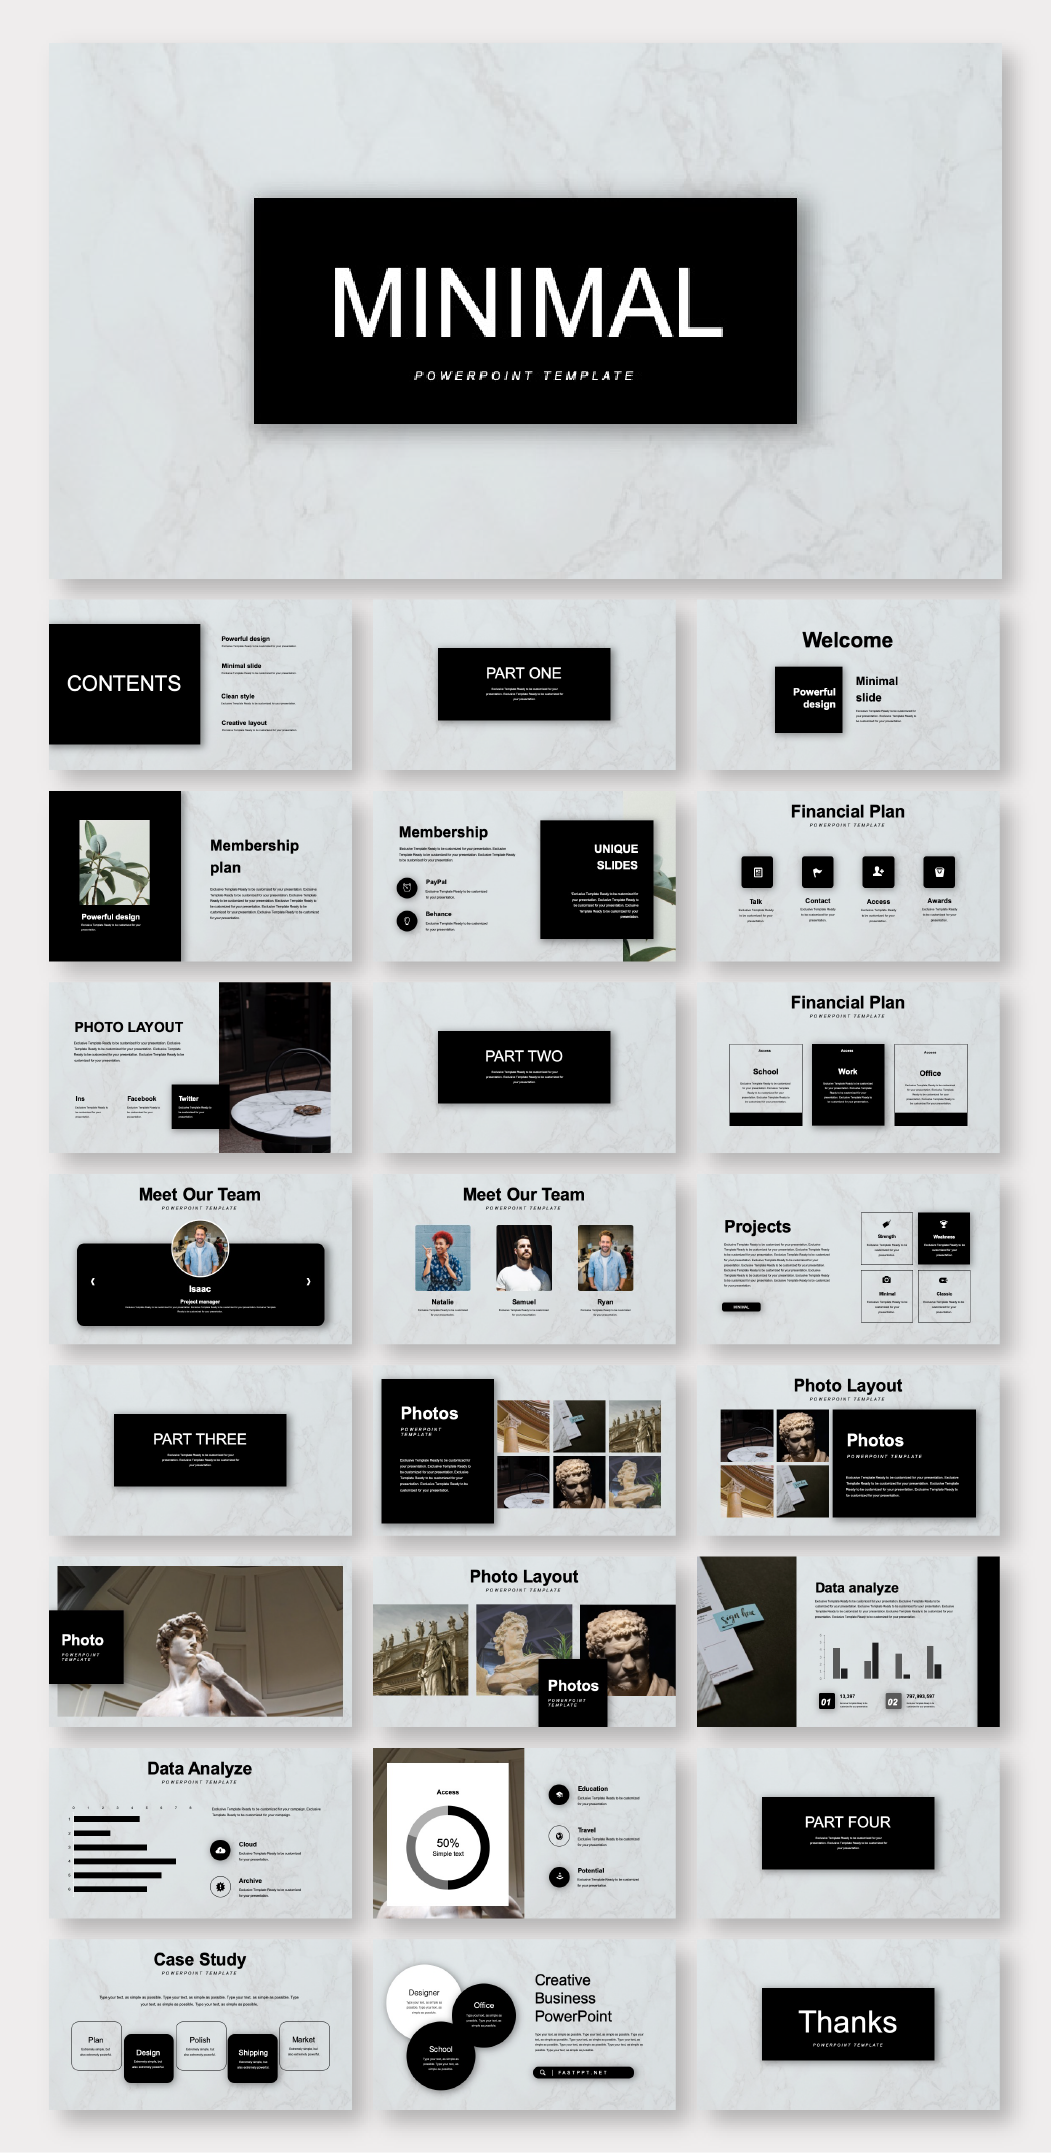 Black Marble Minimalist Business Plan Presentation Template Original And High Quality Powerpoint Templates Business Plan Presentation Presentation Design Layout Powerpoint Presentation Design